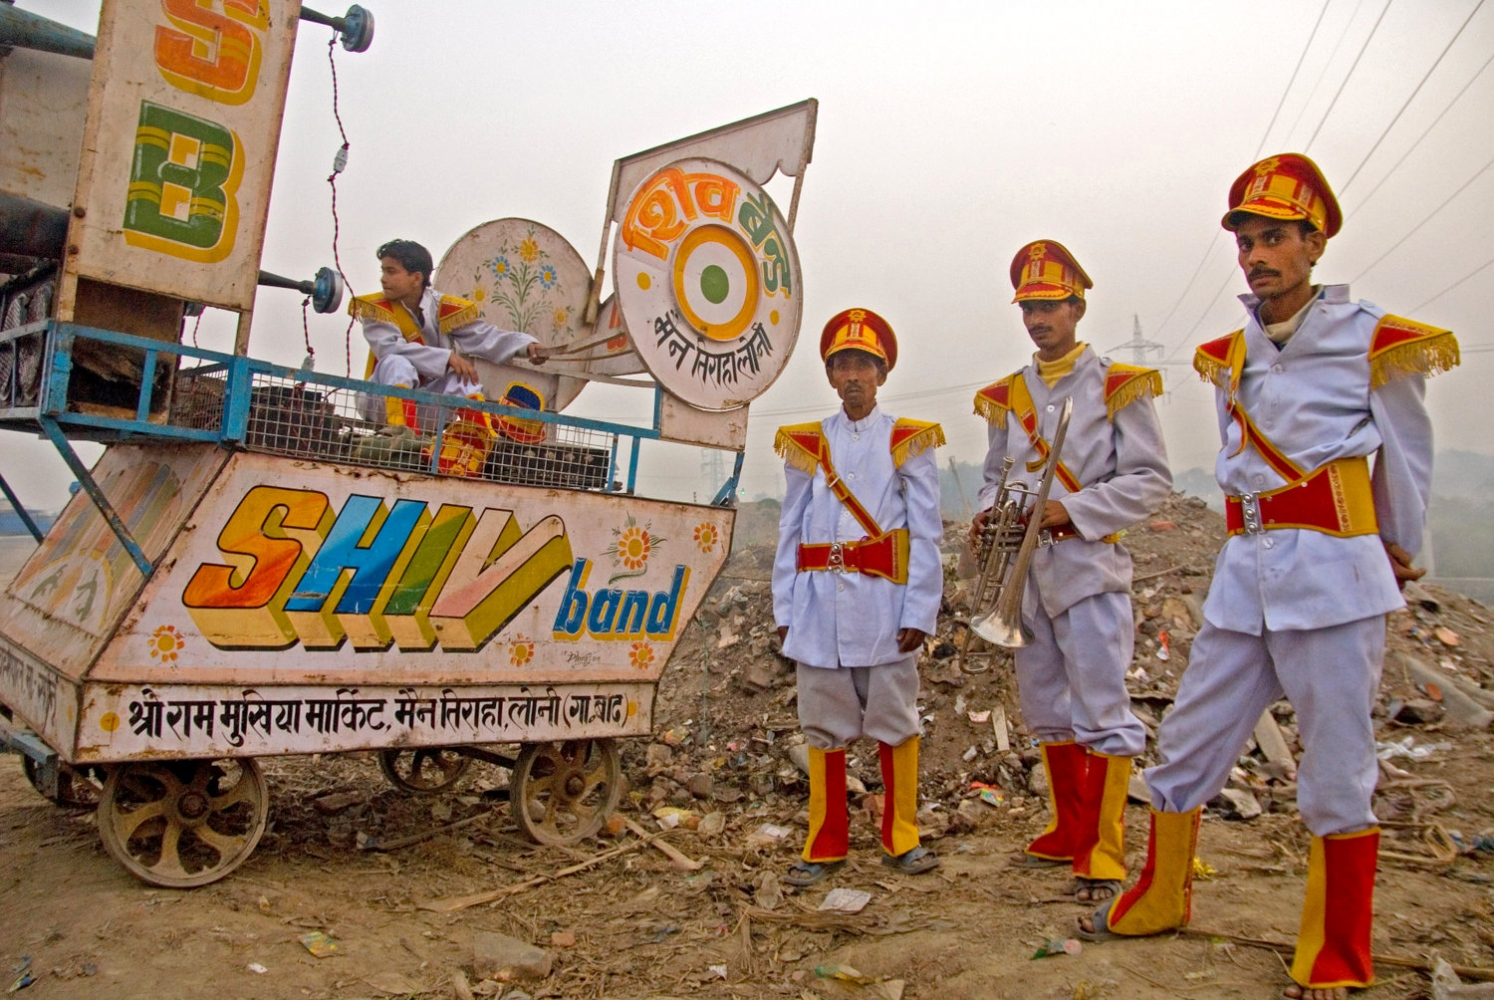 Band on the Run. Delhi